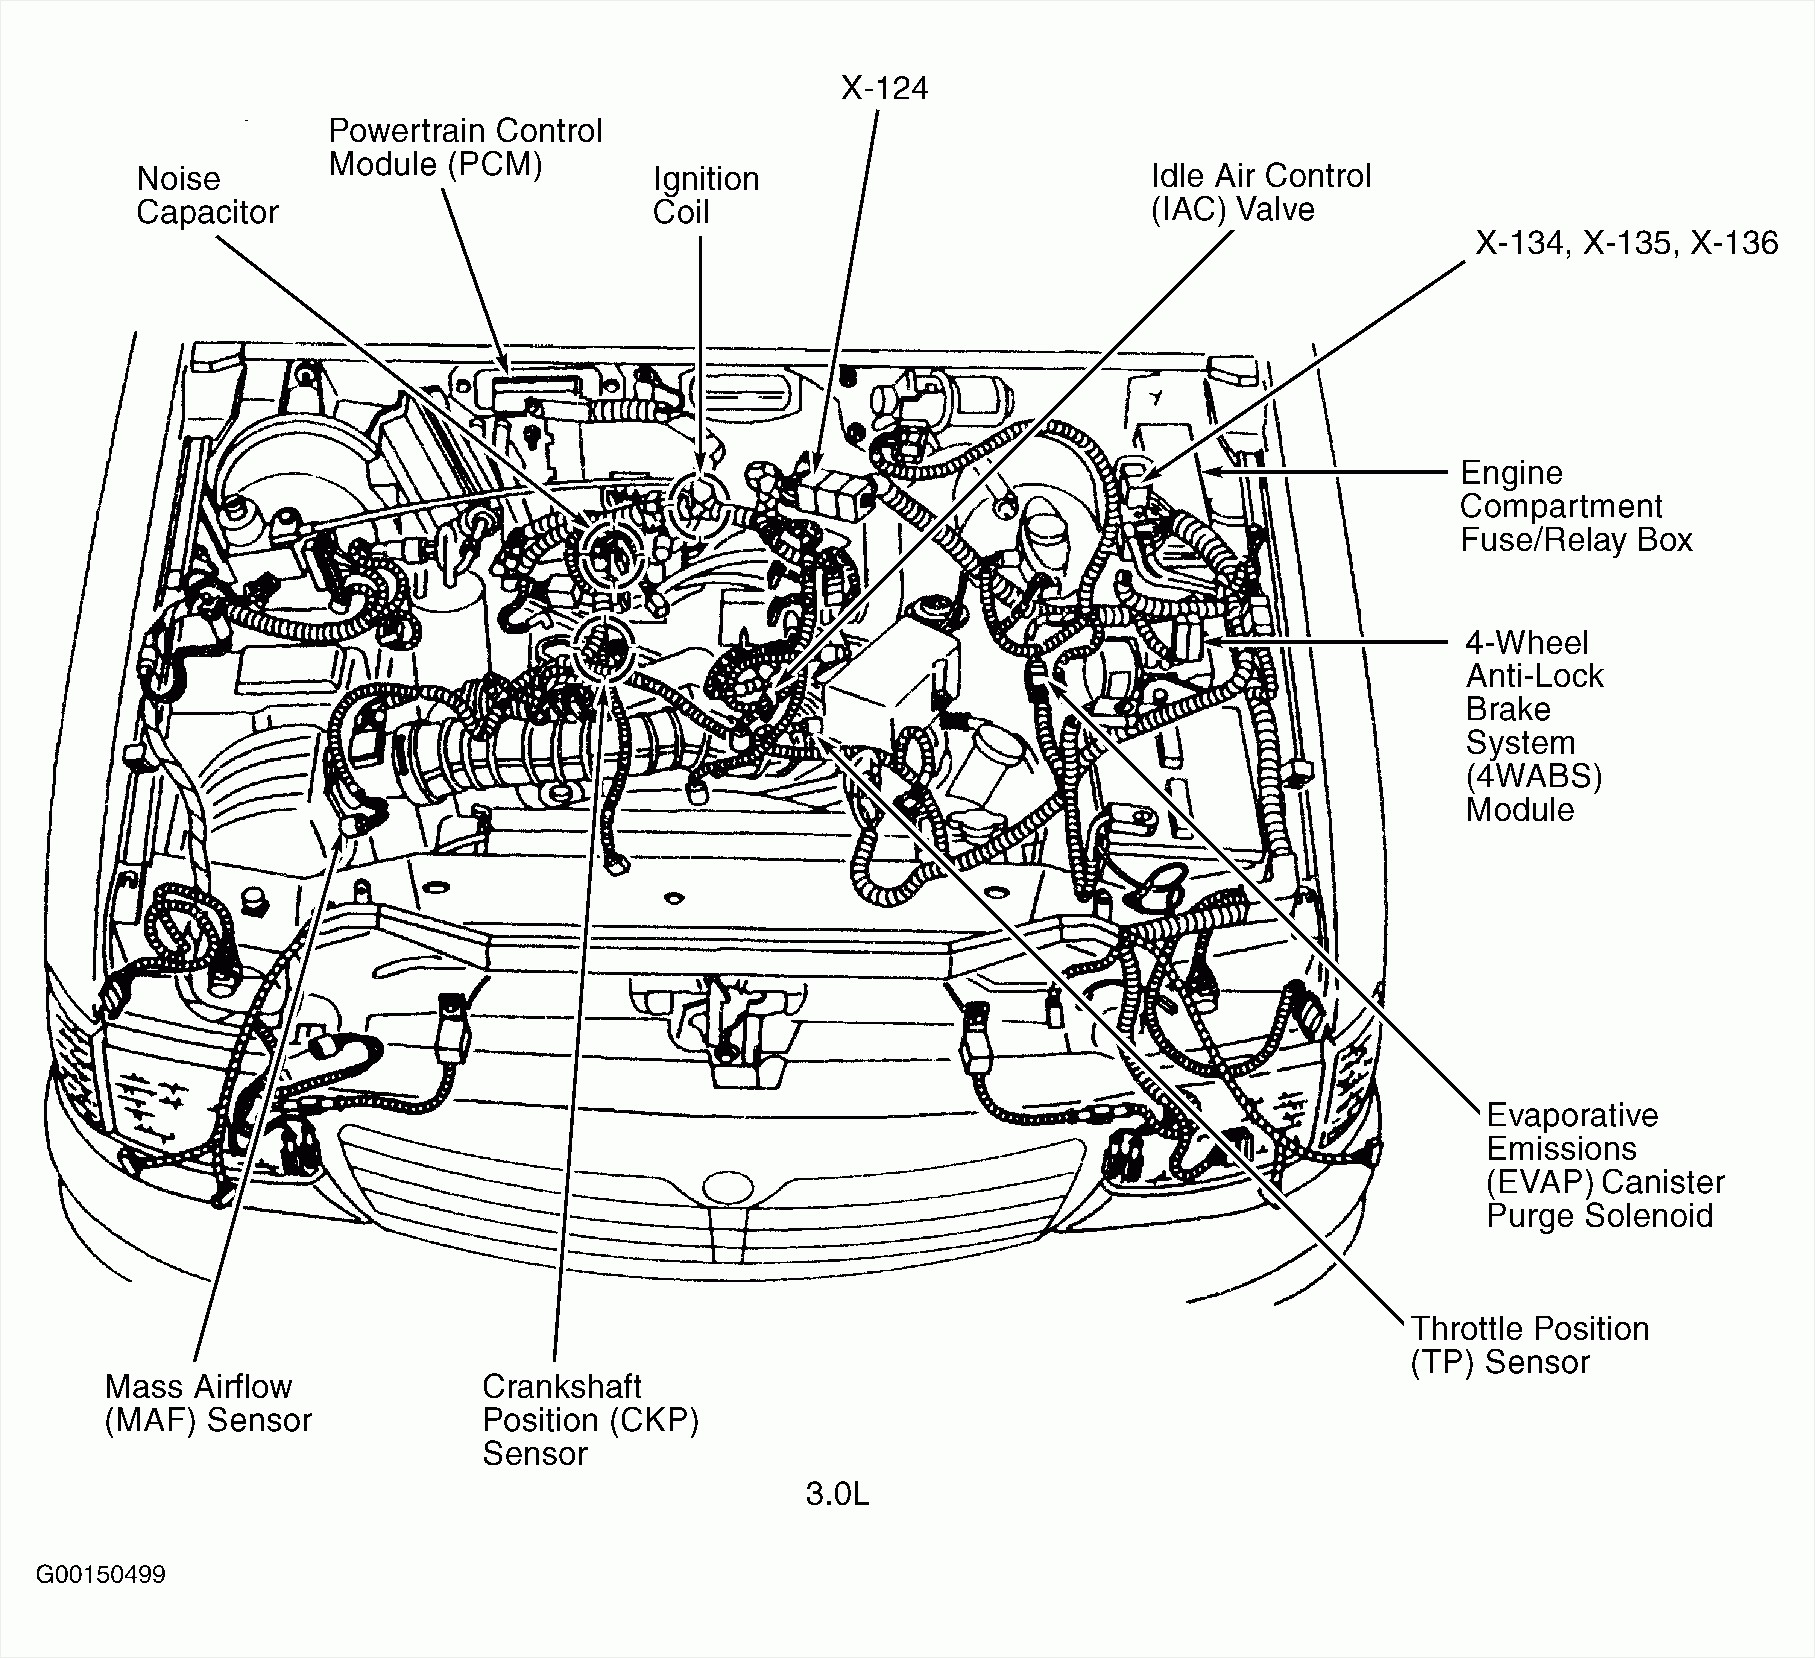 chrysler caravan 3 8 engine diagram wiring diagram z4 rh 19 axdwer biologiethemenabitur de